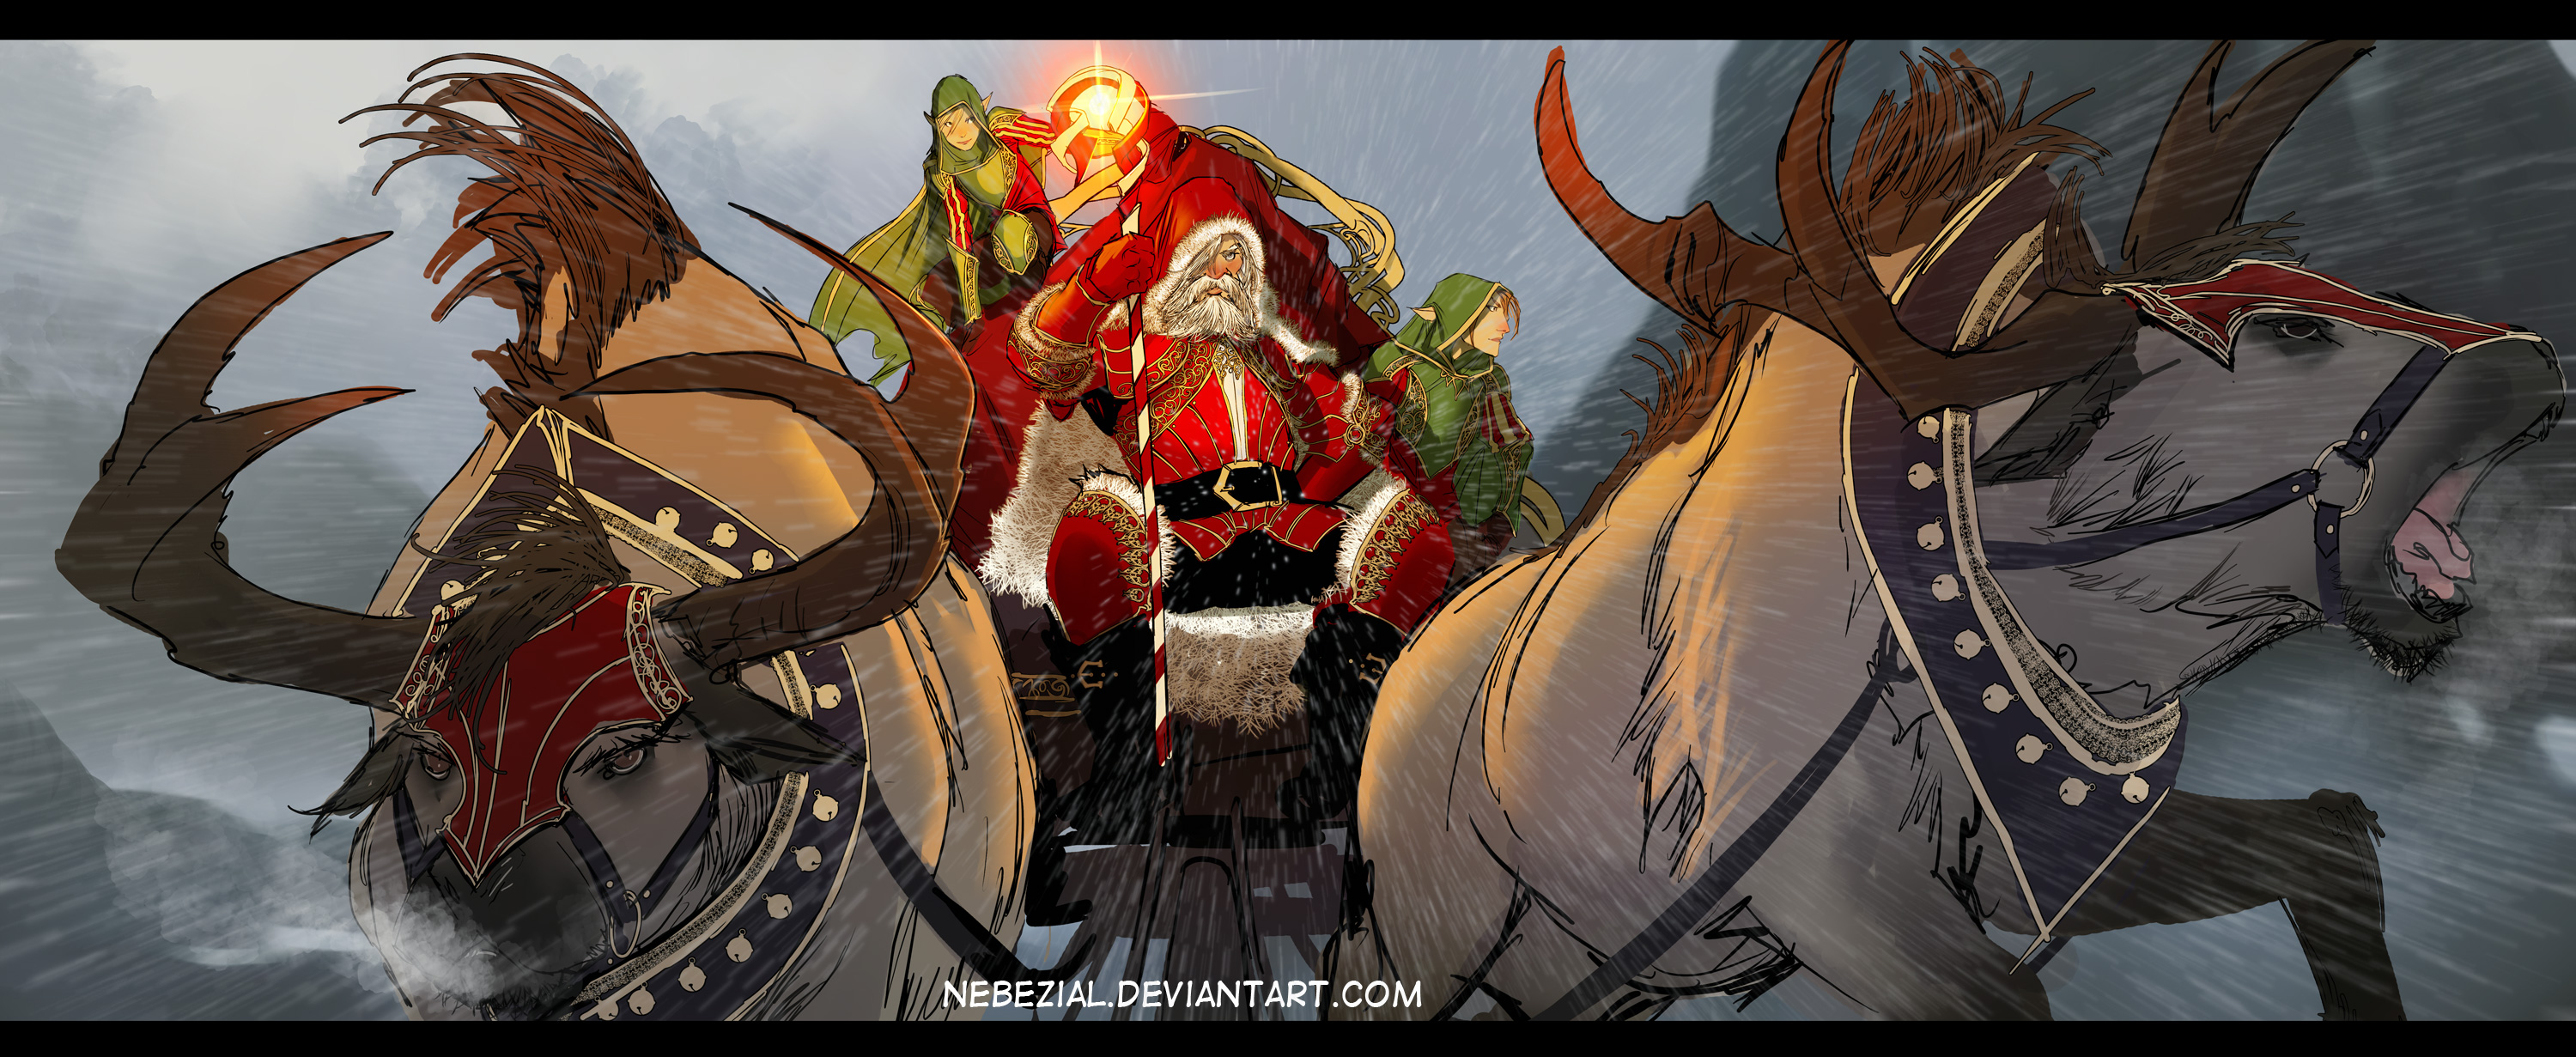 EPIC santa wishes you a FANTASTICAL xmass by nebezial